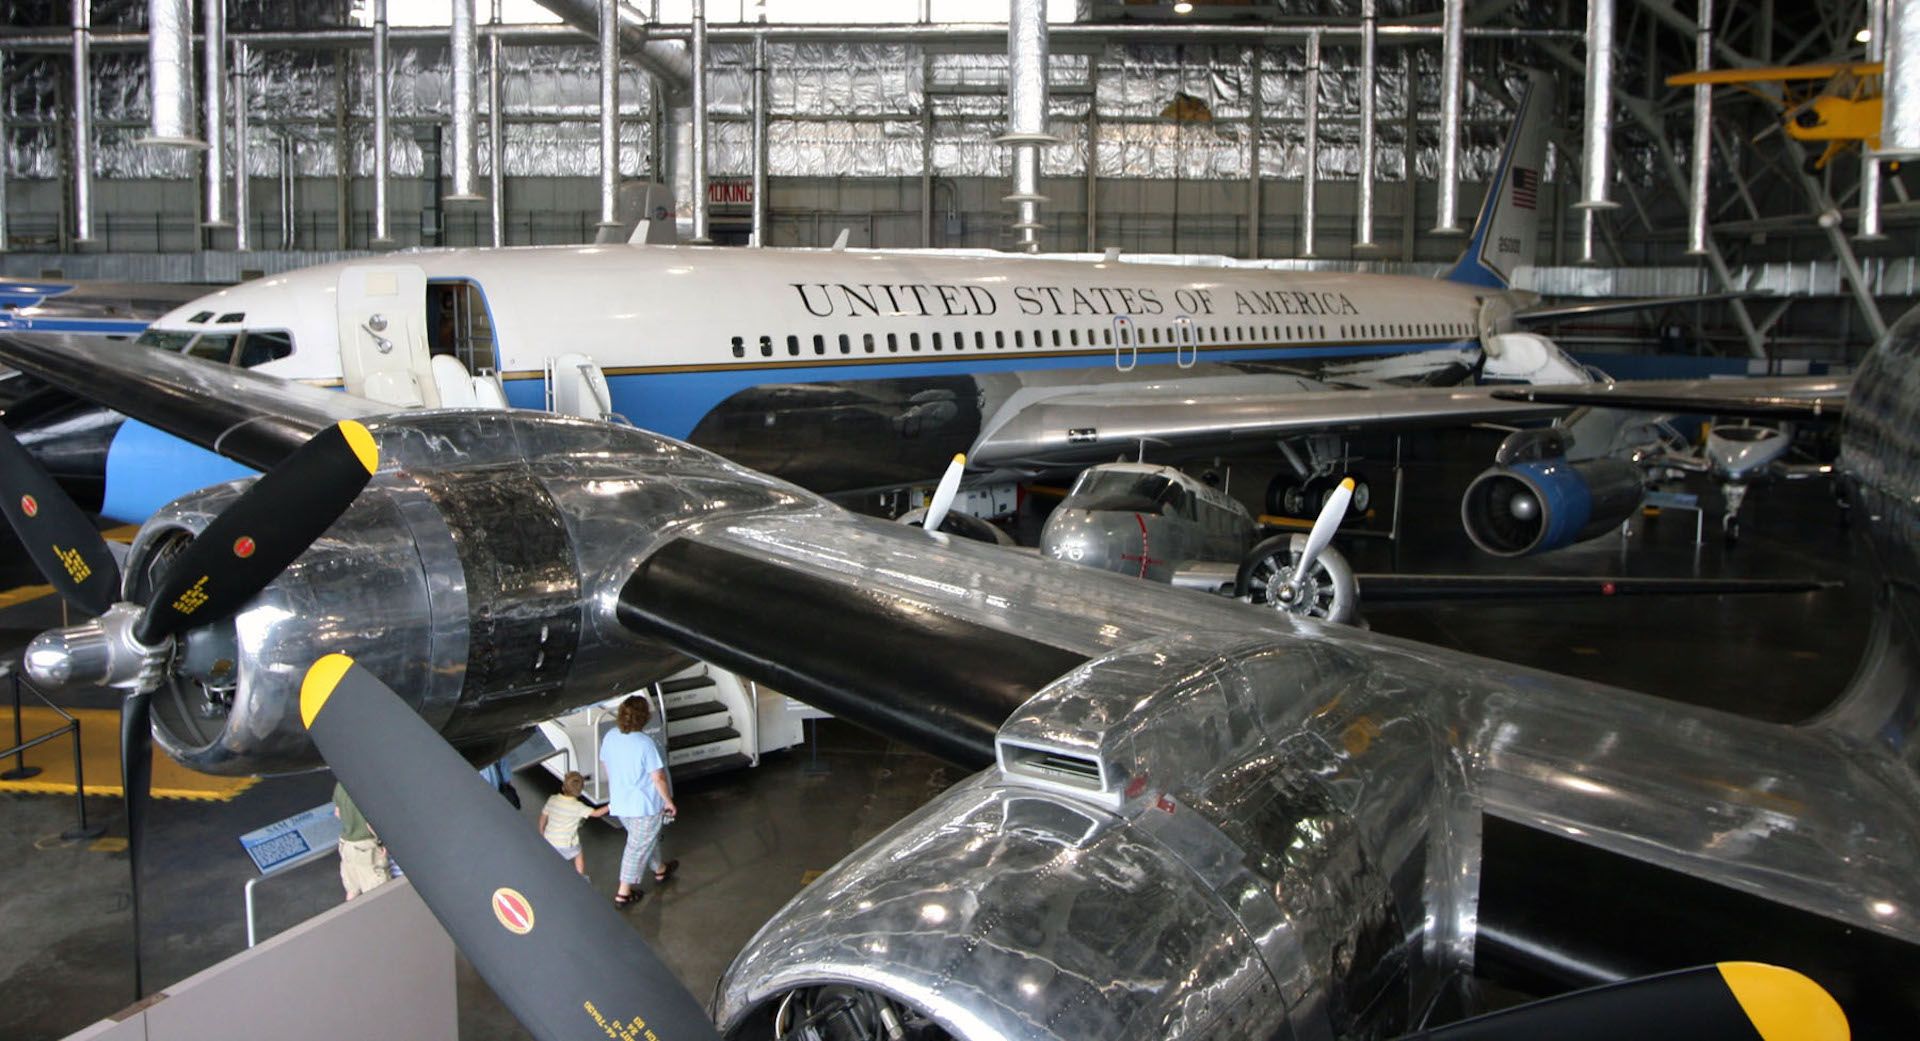 Boeing VC-137C SAM 26000 (Air Force One) in the Presidential Gallery at the National Museum of the United States Air Force. (Photo courtesy of Craig Scaling, Airshow Traveler)